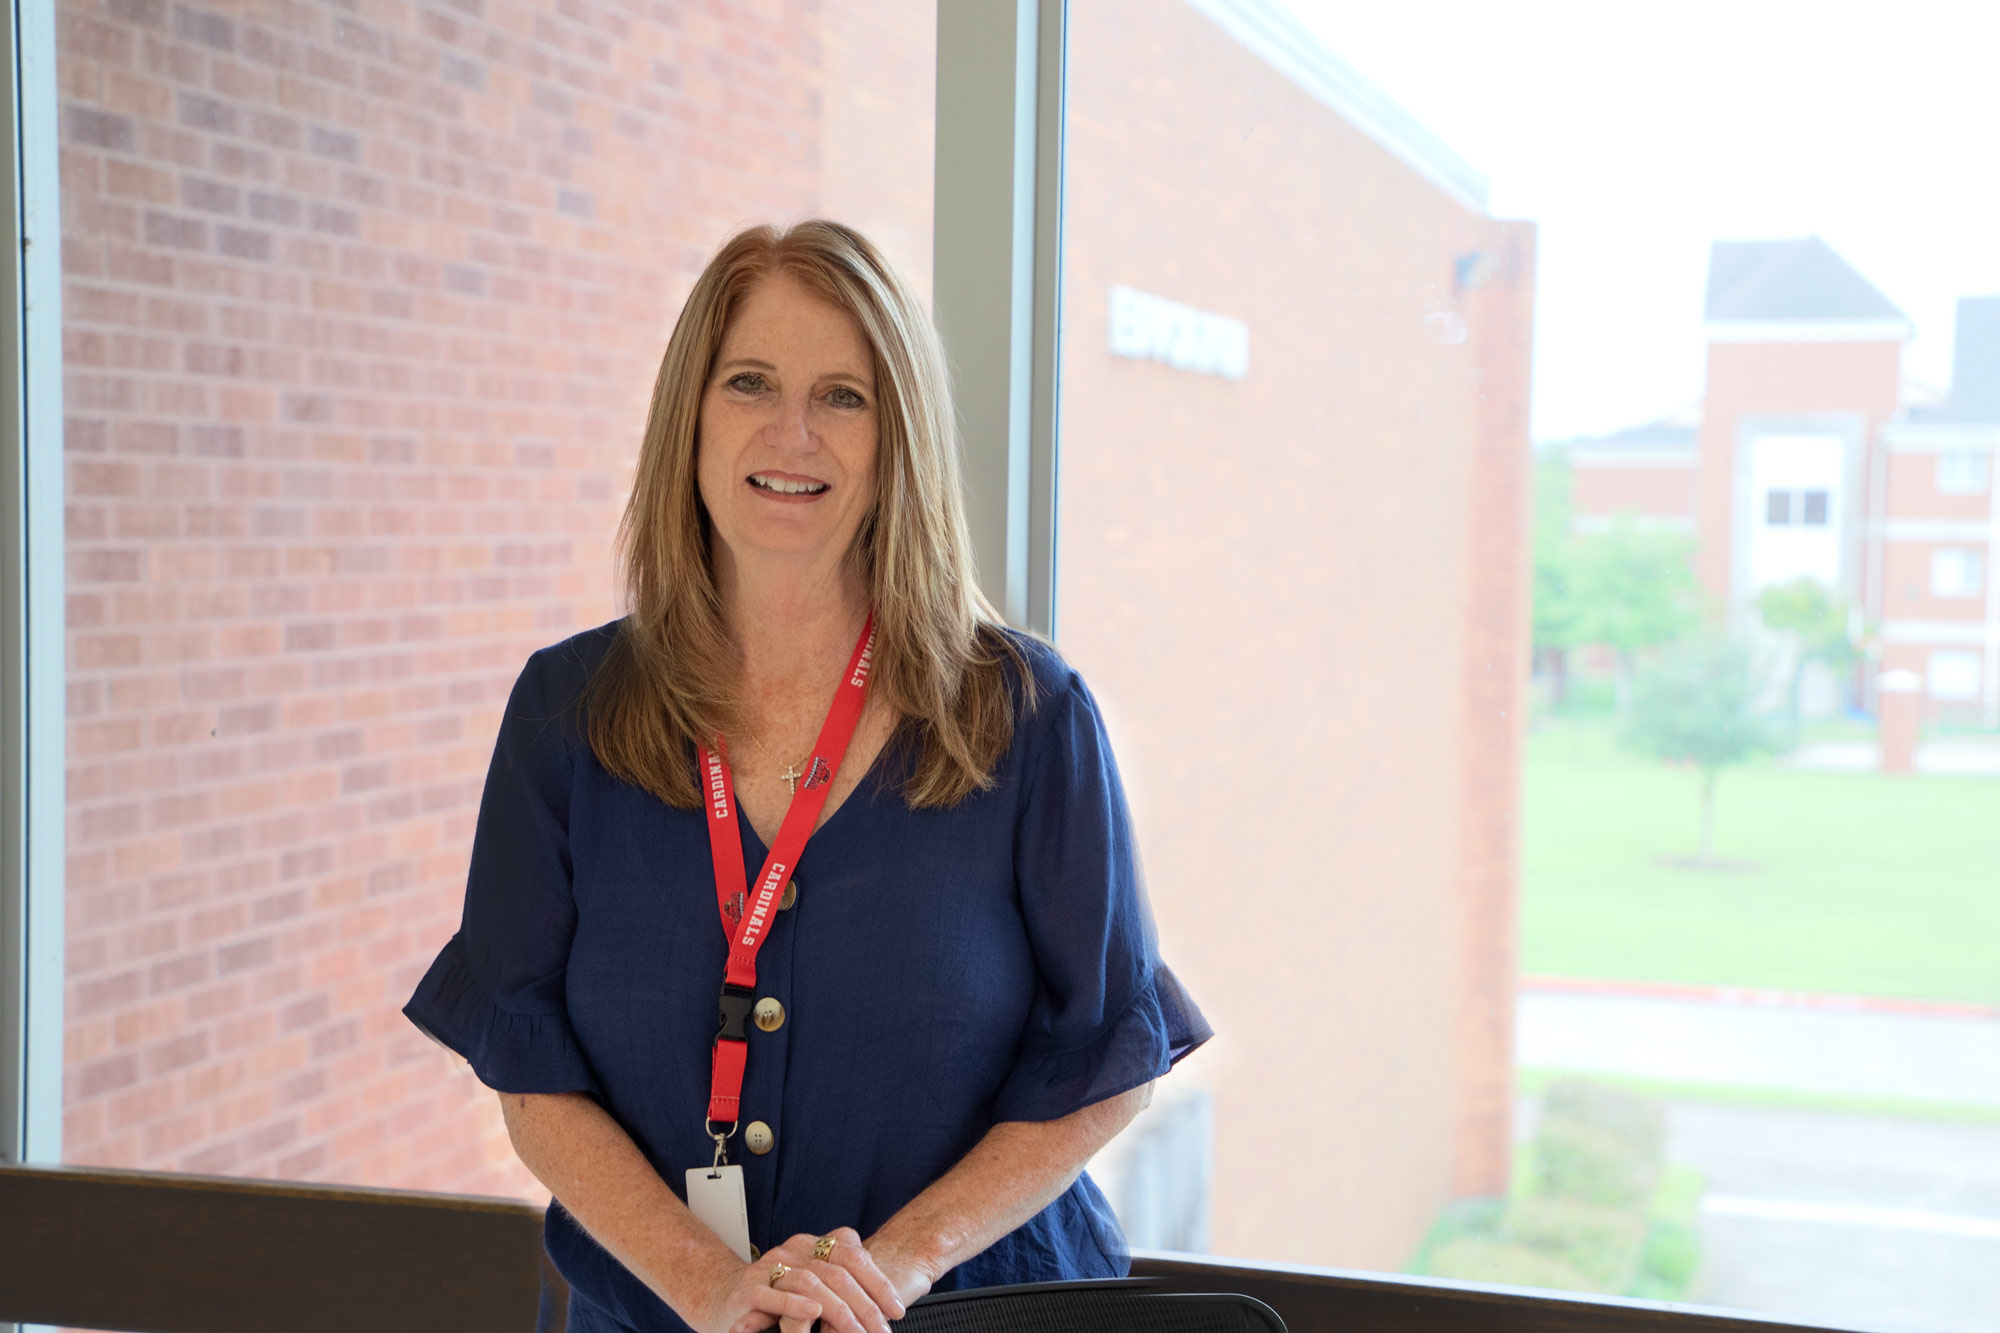 Lamar University's College of Education and Human Development Welcomes Jody Slaughter to the Team